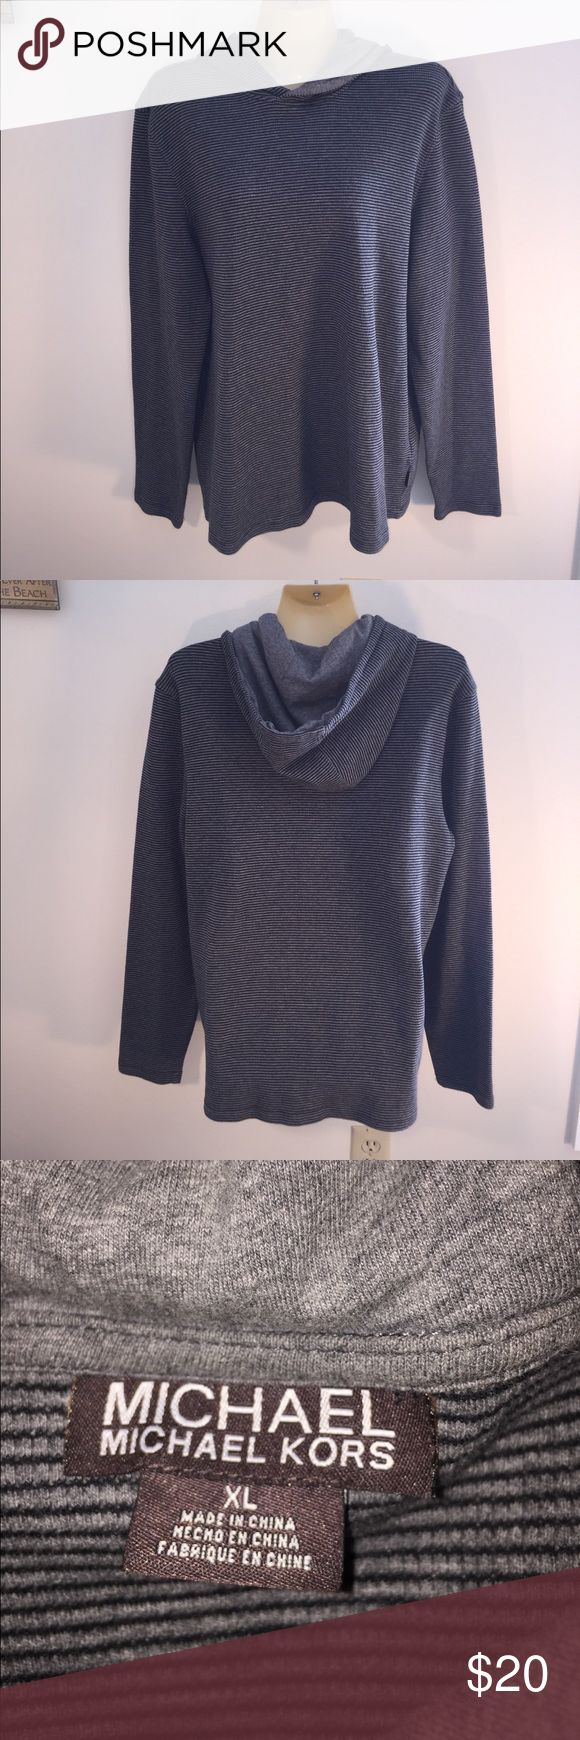 Michael Kors XL Pull Over Hood Perfect w/Leggings Michael Kors XL Pull Over with Hood Perfect with Leggings or Jeans Casual Top for Everyday Errands EUC MICHAEL Michael Kors Tops